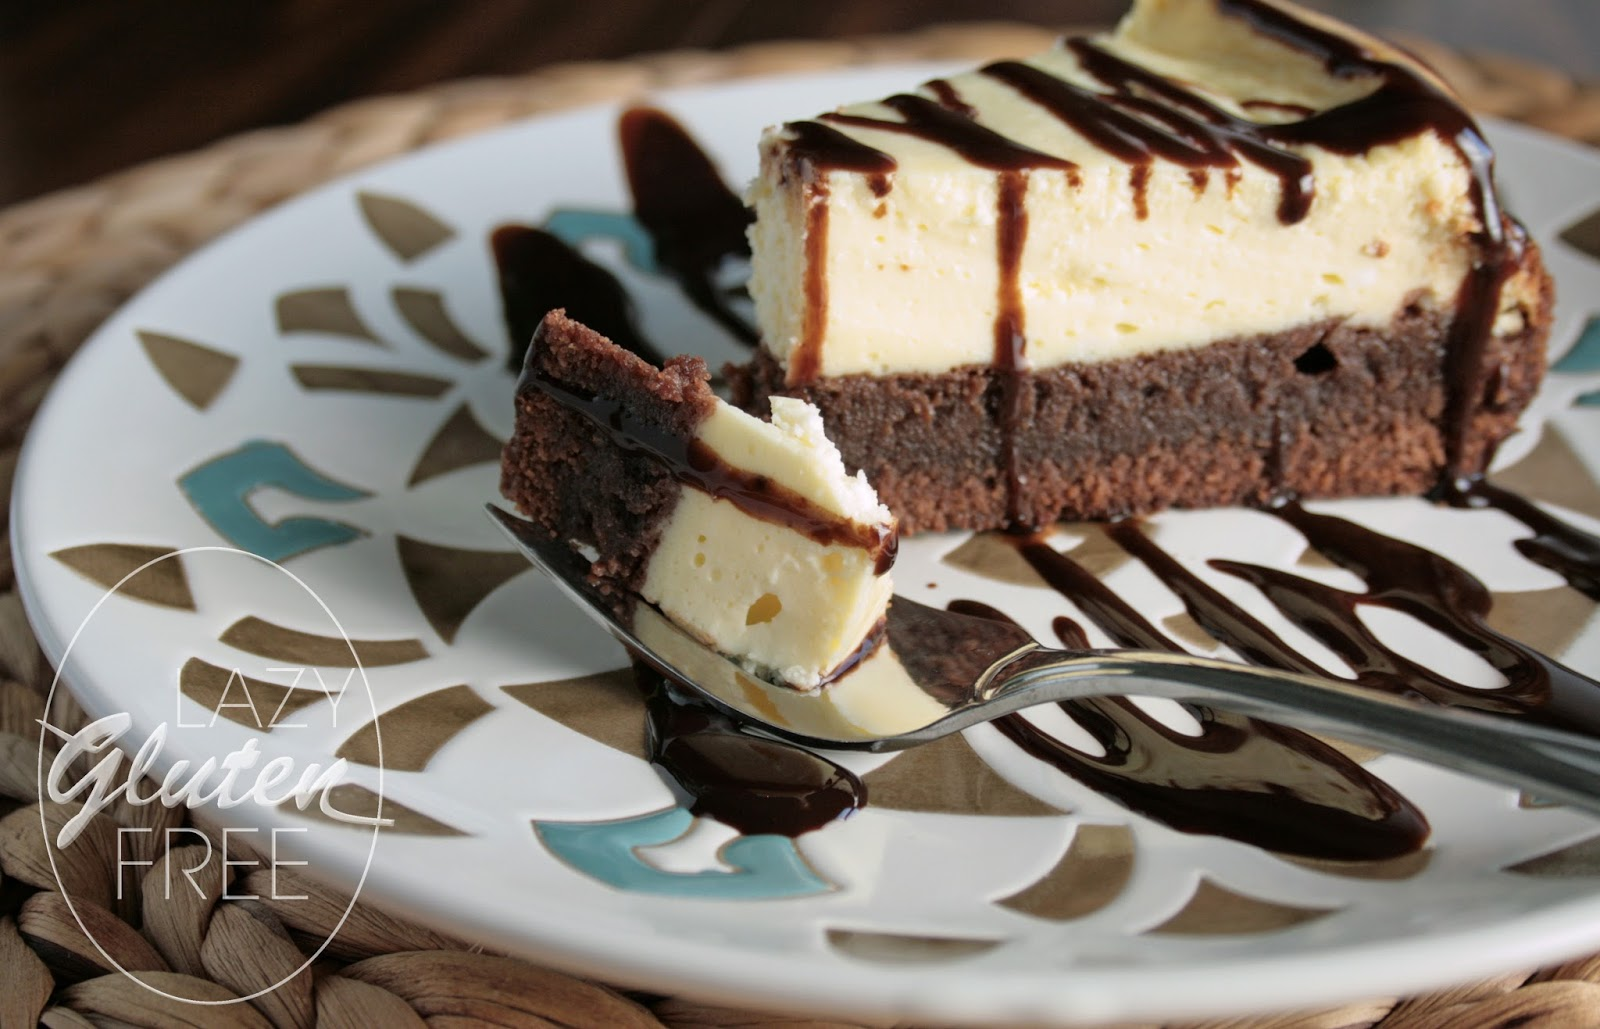 Lazy Gluten Free: Gluten Free Brownie Cheesecake